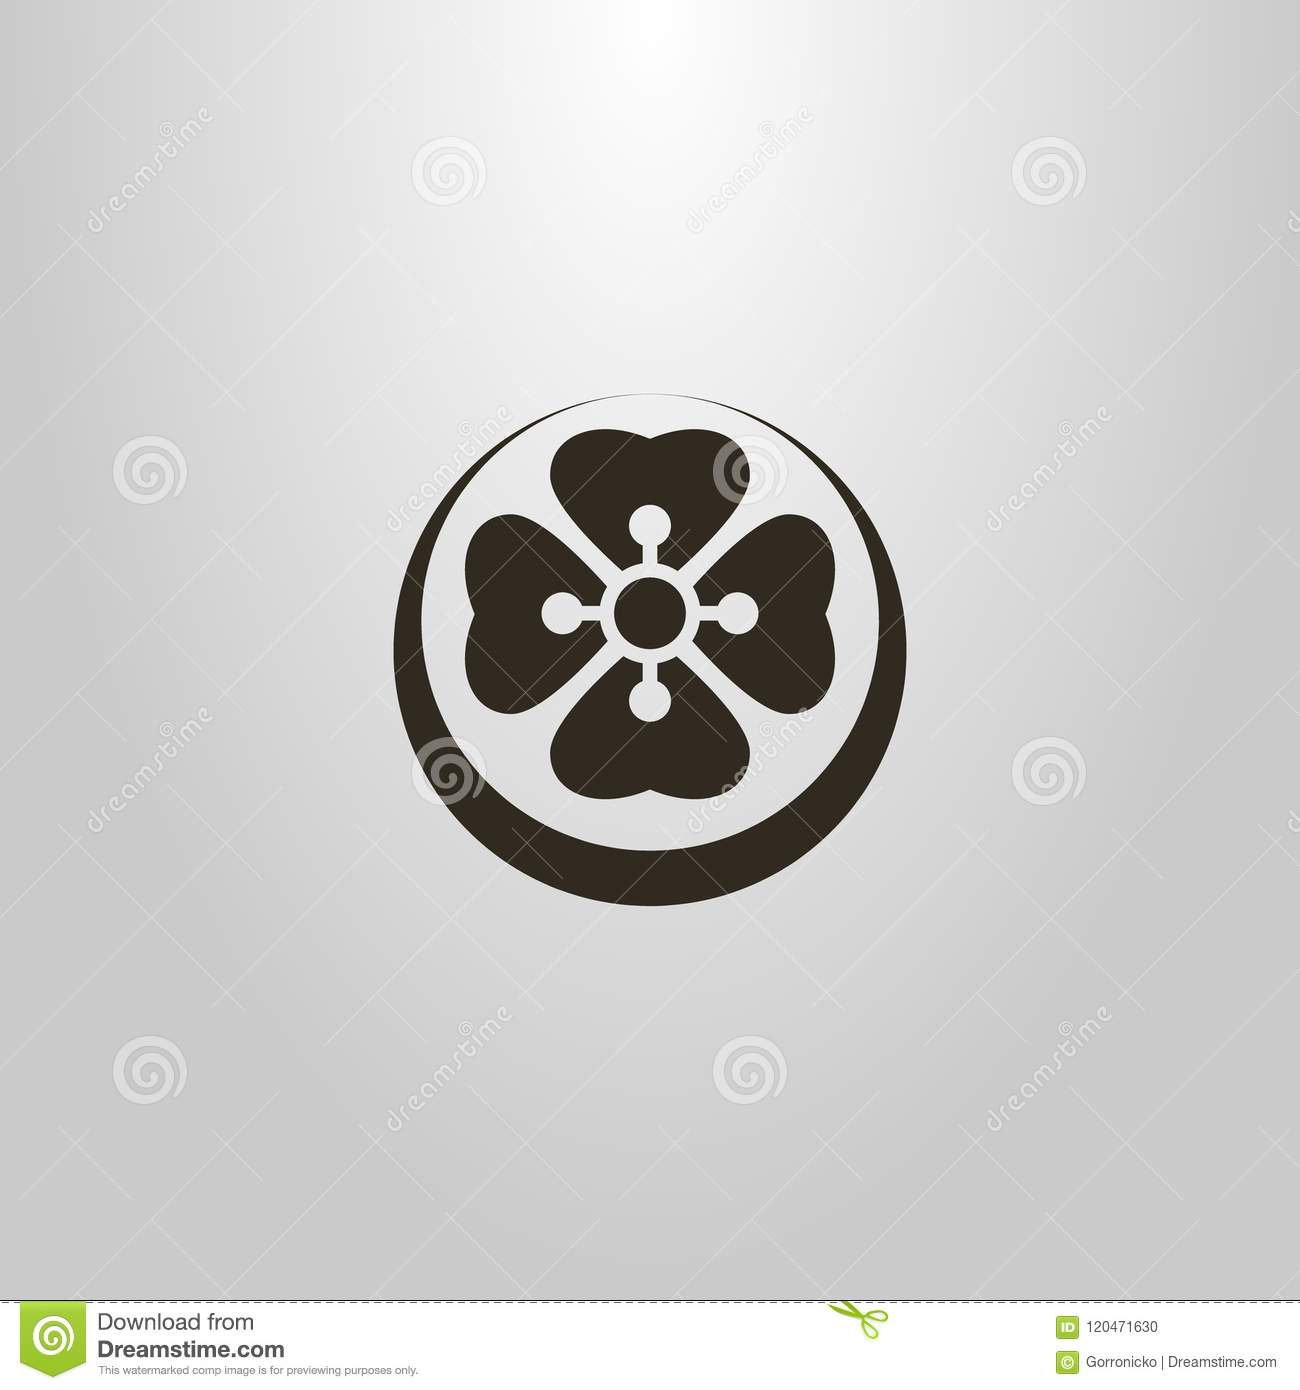 Simple vector symbol of an abstract flower lotus in a round frame simple vector symbol of an abstract flower lotus in a round frame izmirmasajfo